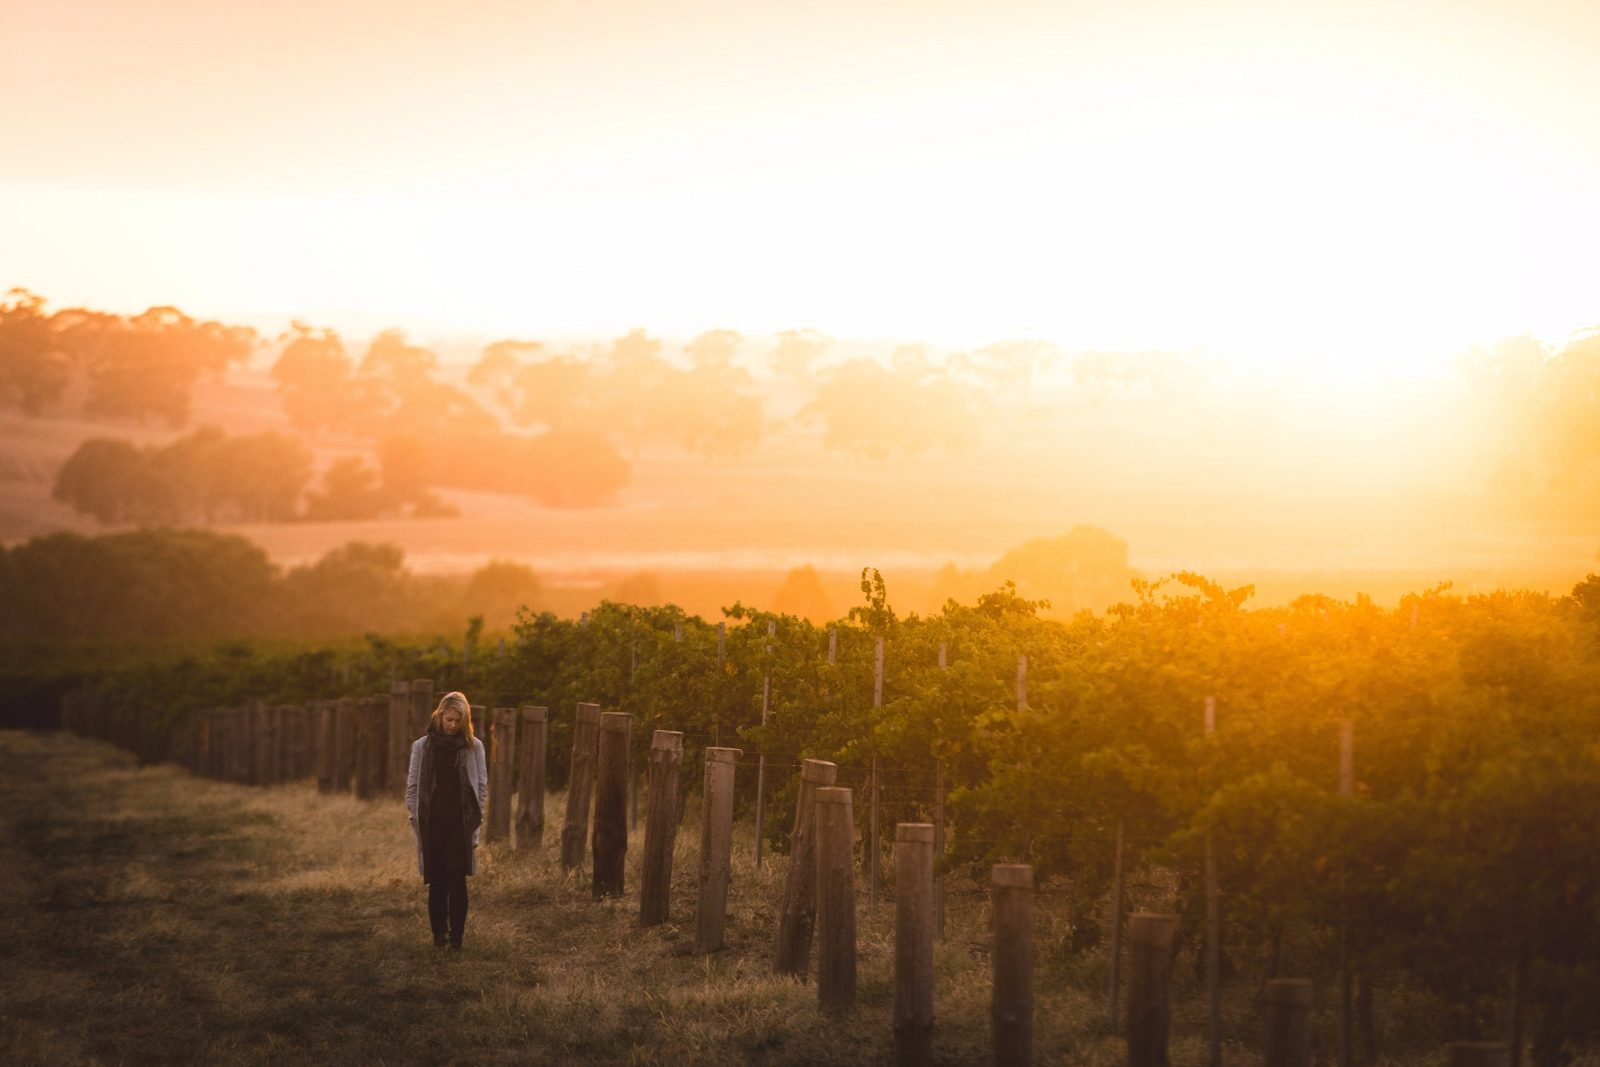 Sunset over the vineyard at Taylors Wines in the Clare Valley